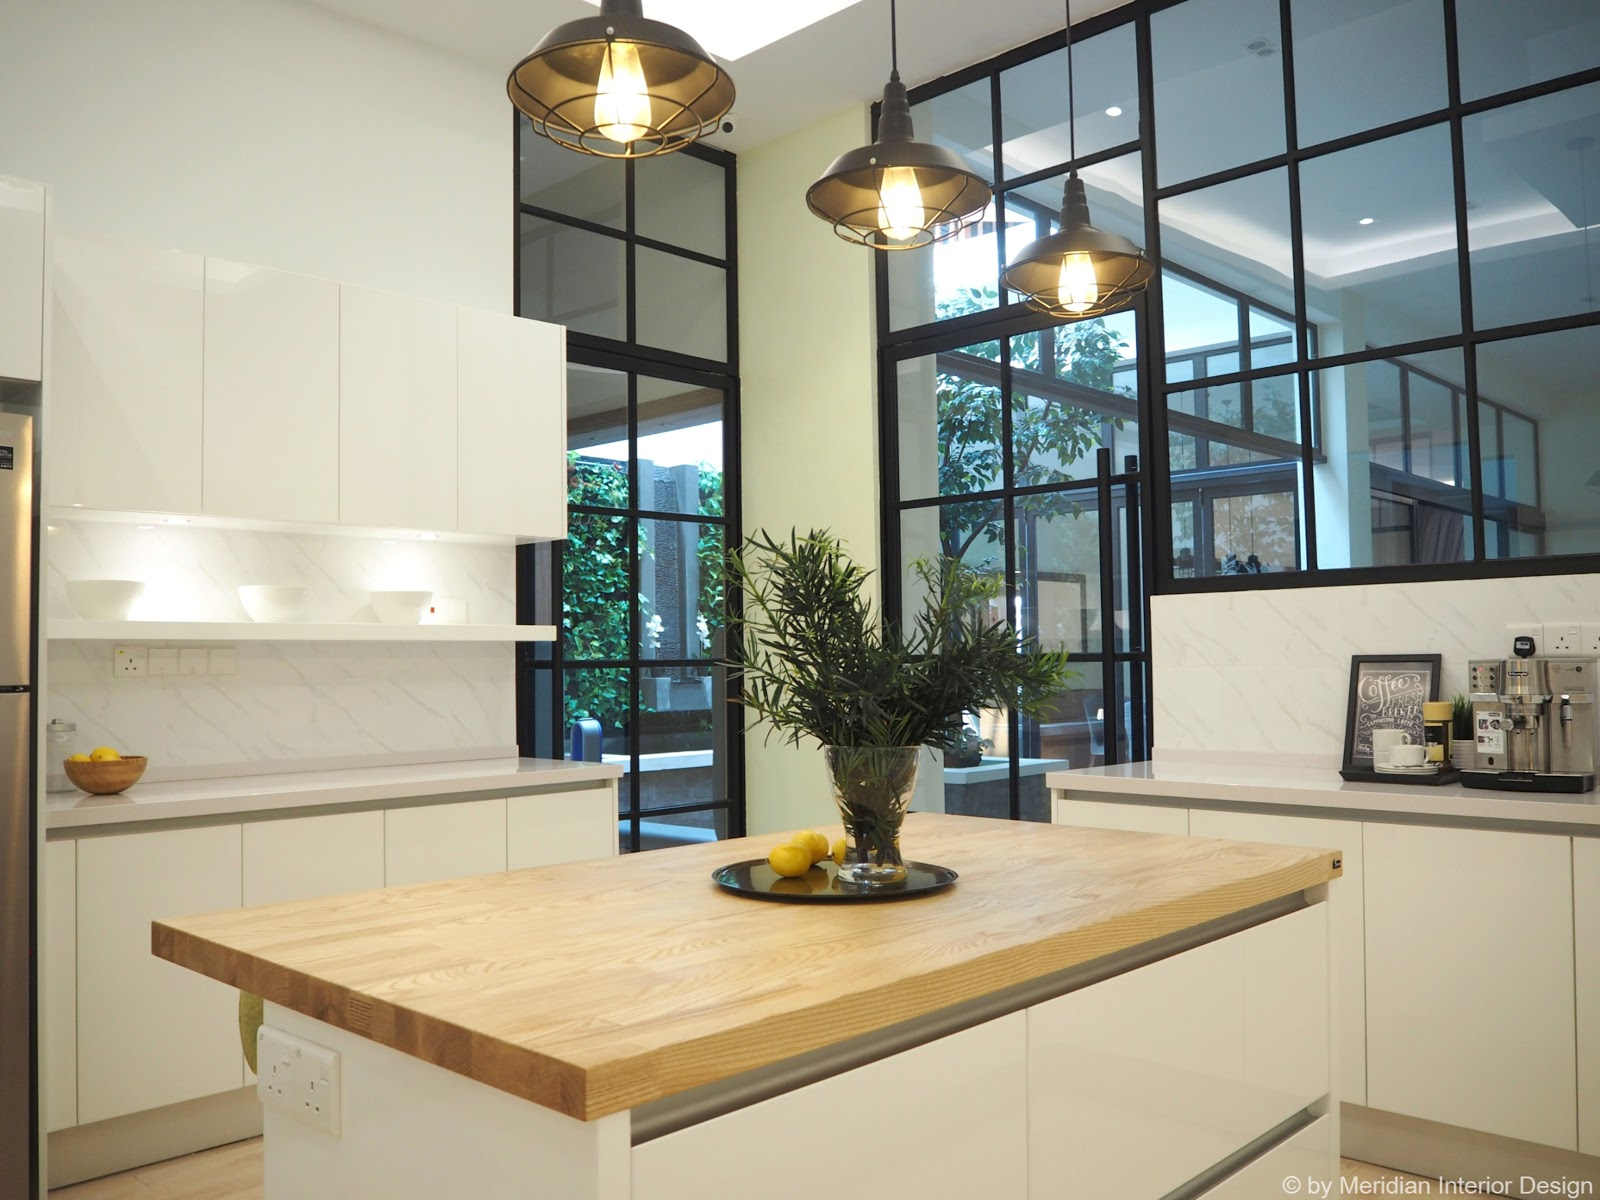 Meridian Interior Design And Kitchen Design In Kuala